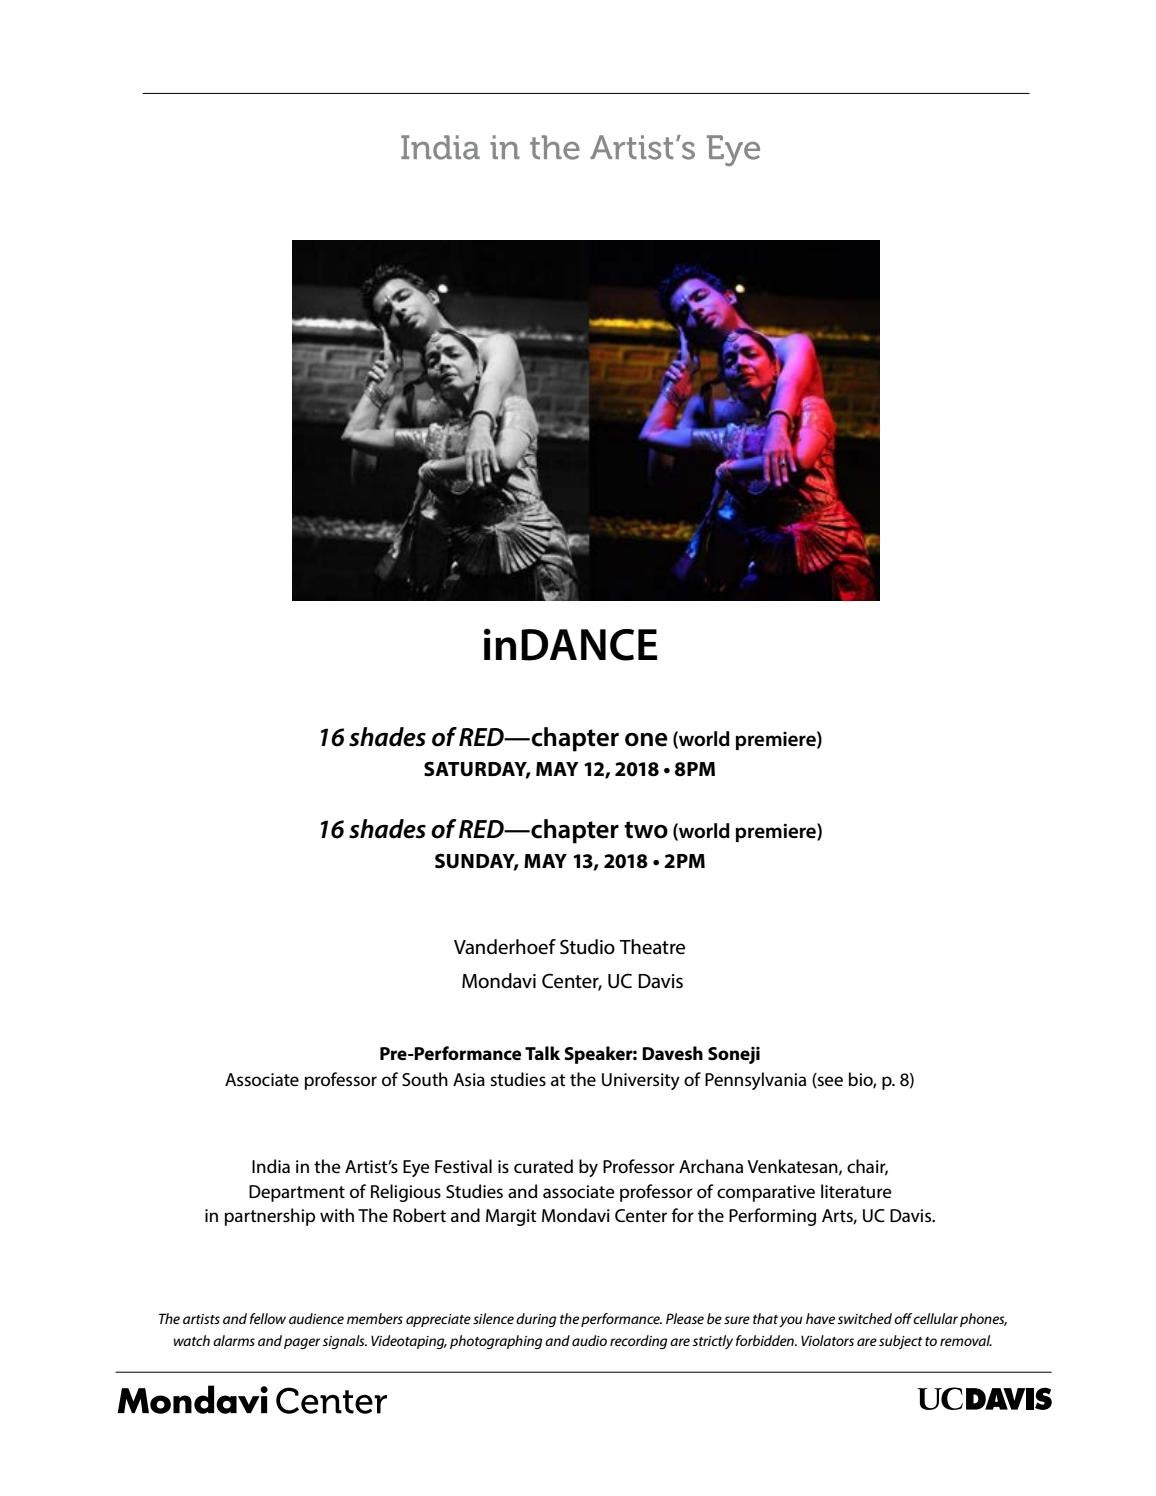 inDANCE Program by Robert and Margrit Mondavi Center for the